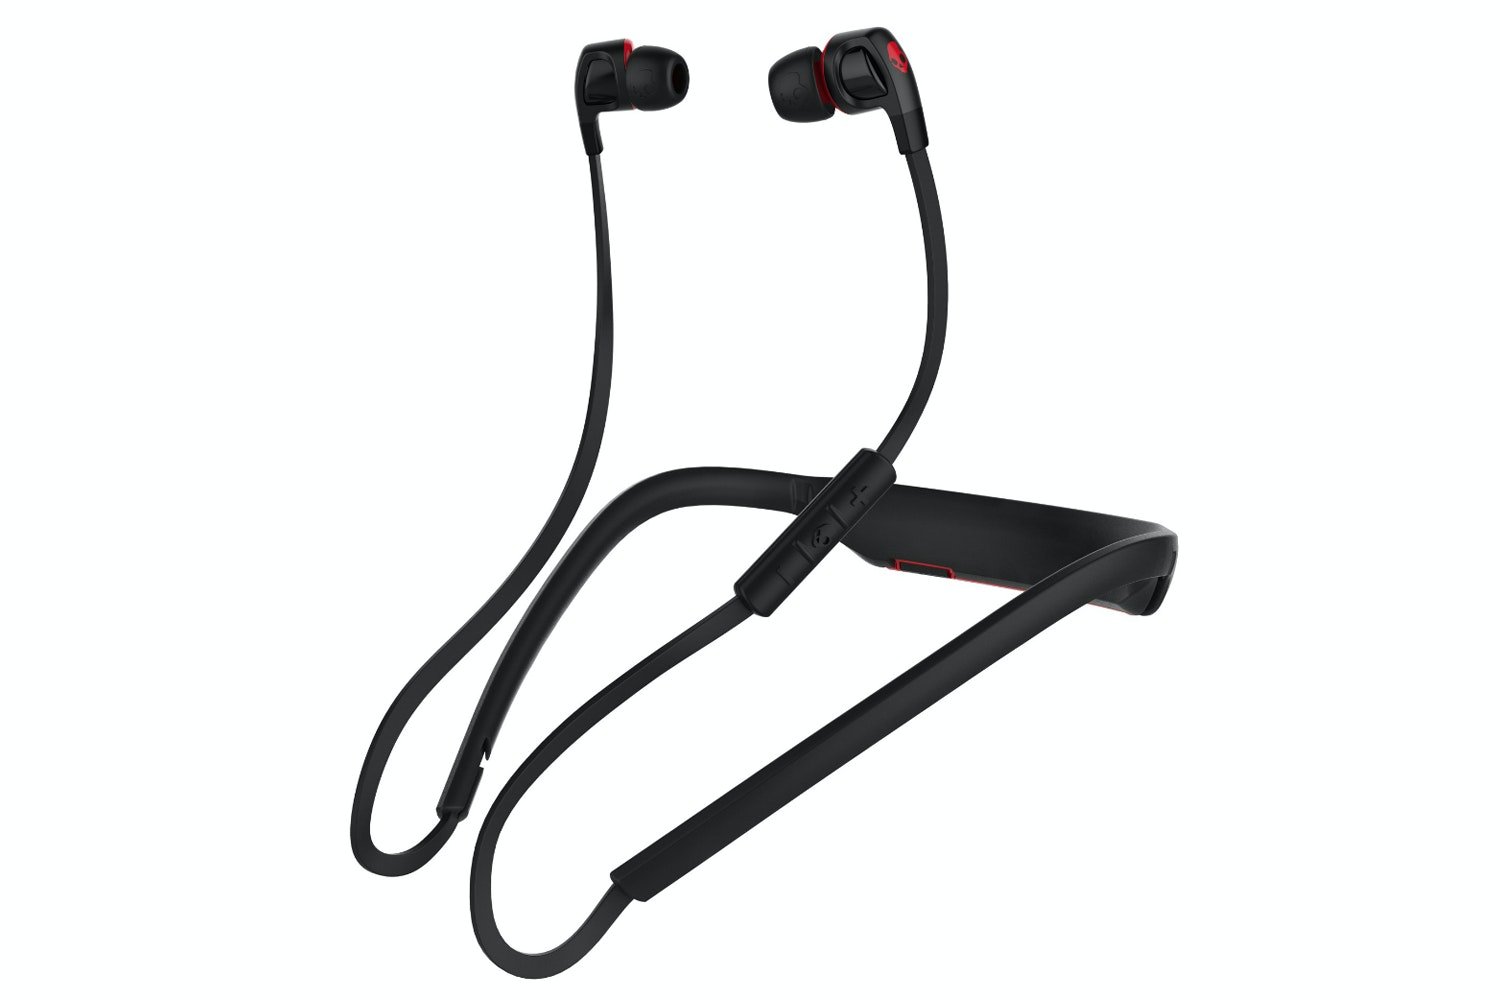 Skullcandy Smokin' Buds 2 Wireless Earphones | Black & Red